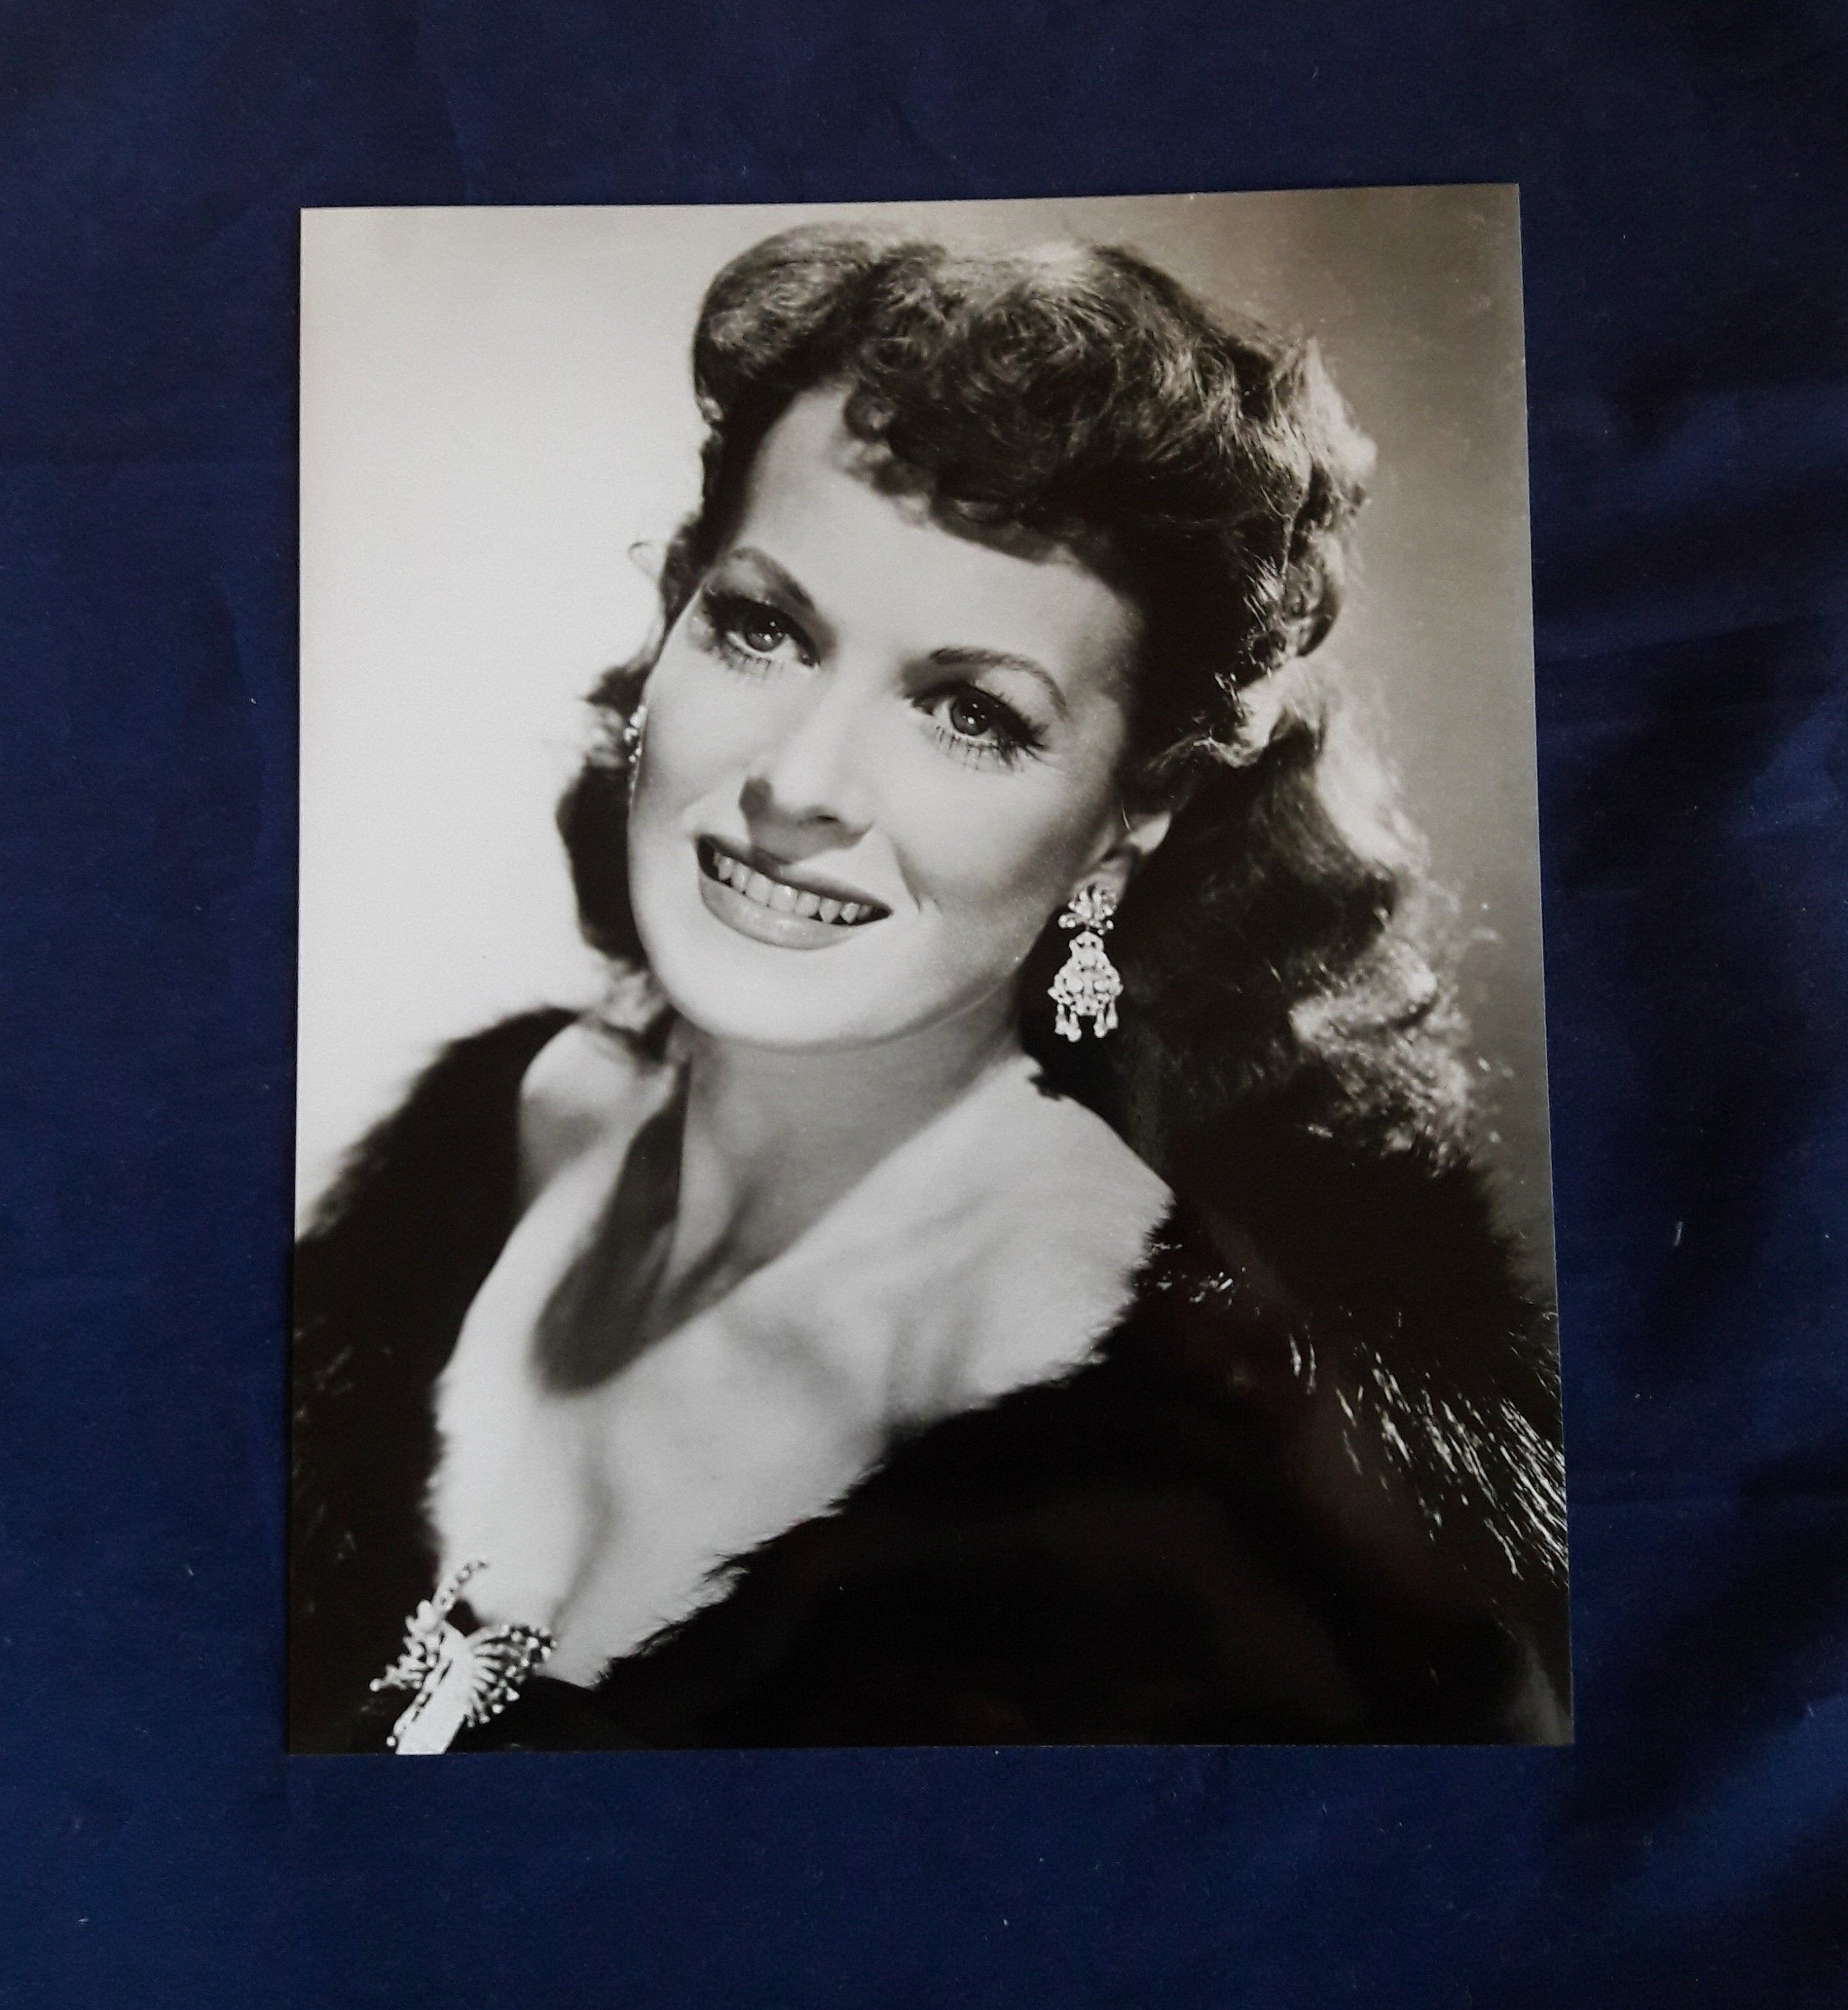 Maureen O'Hara | Vintage Black and White 8 x 10 glossy Photograph | Golden Age of Hollywood Actress | Unframed Photo #hollywoodgoldenage